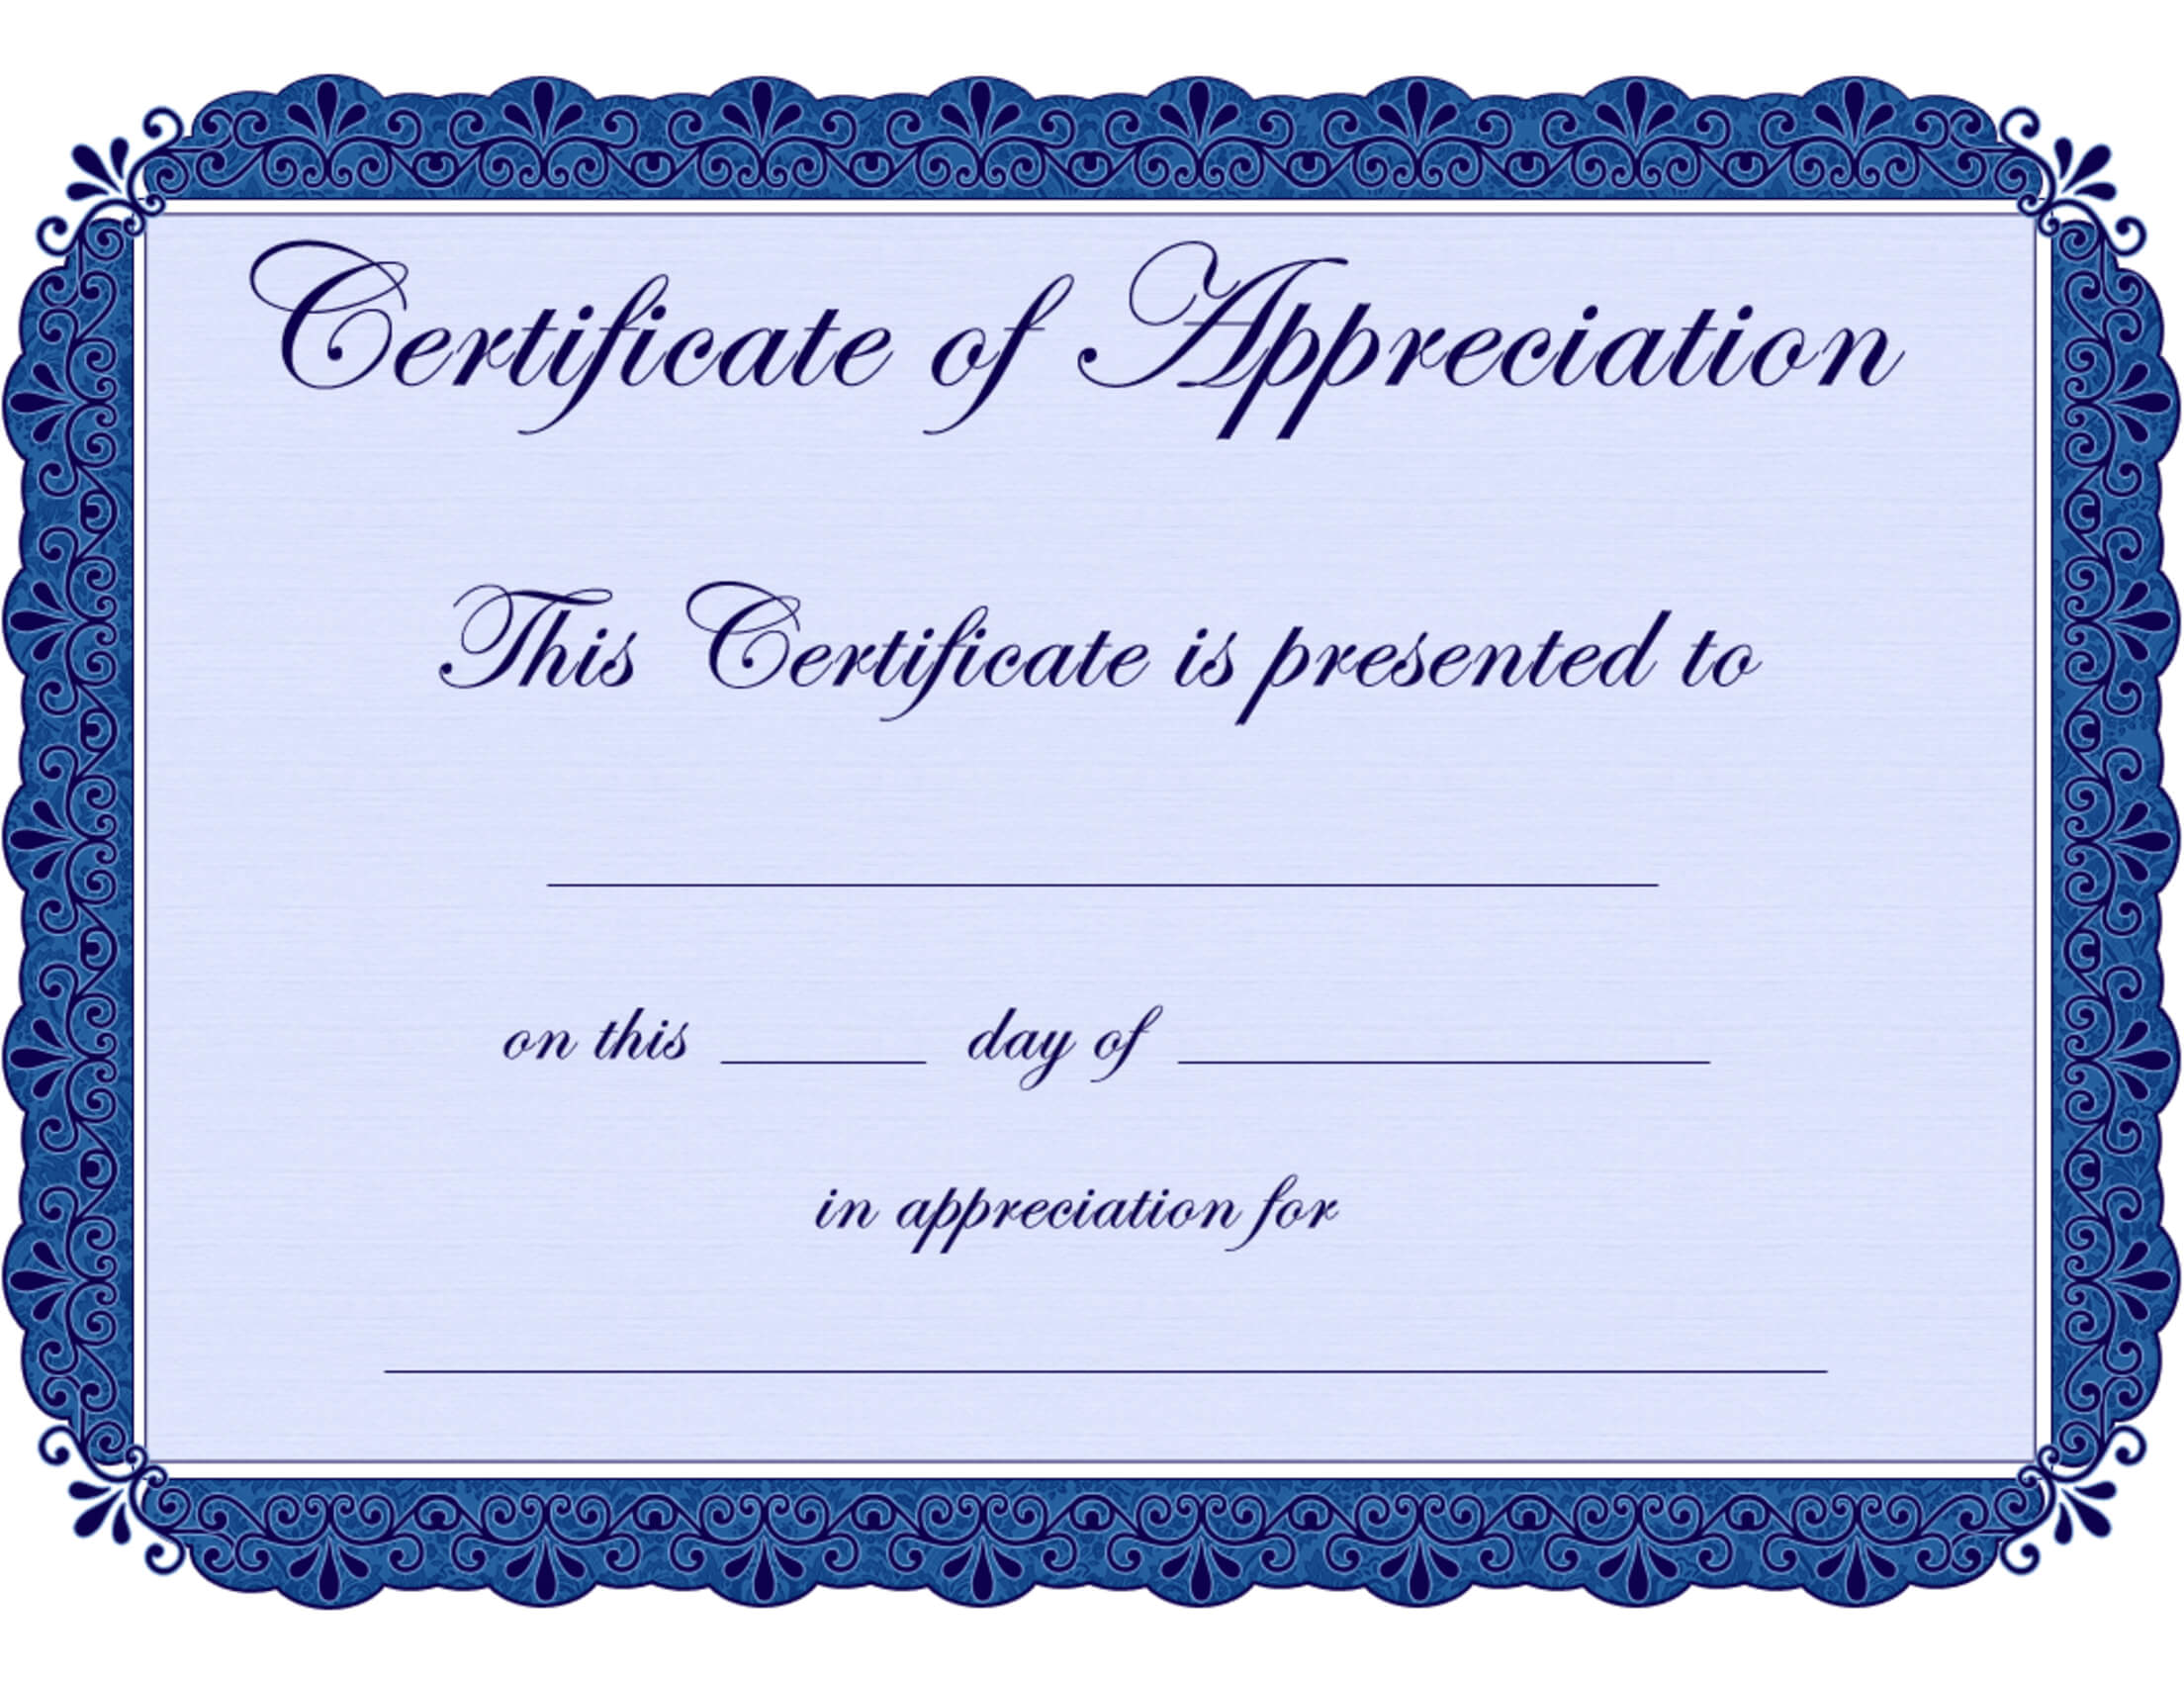 Free Printable Certificates Certificate Of Appreciation For Free Template For Certificate Of Recognition